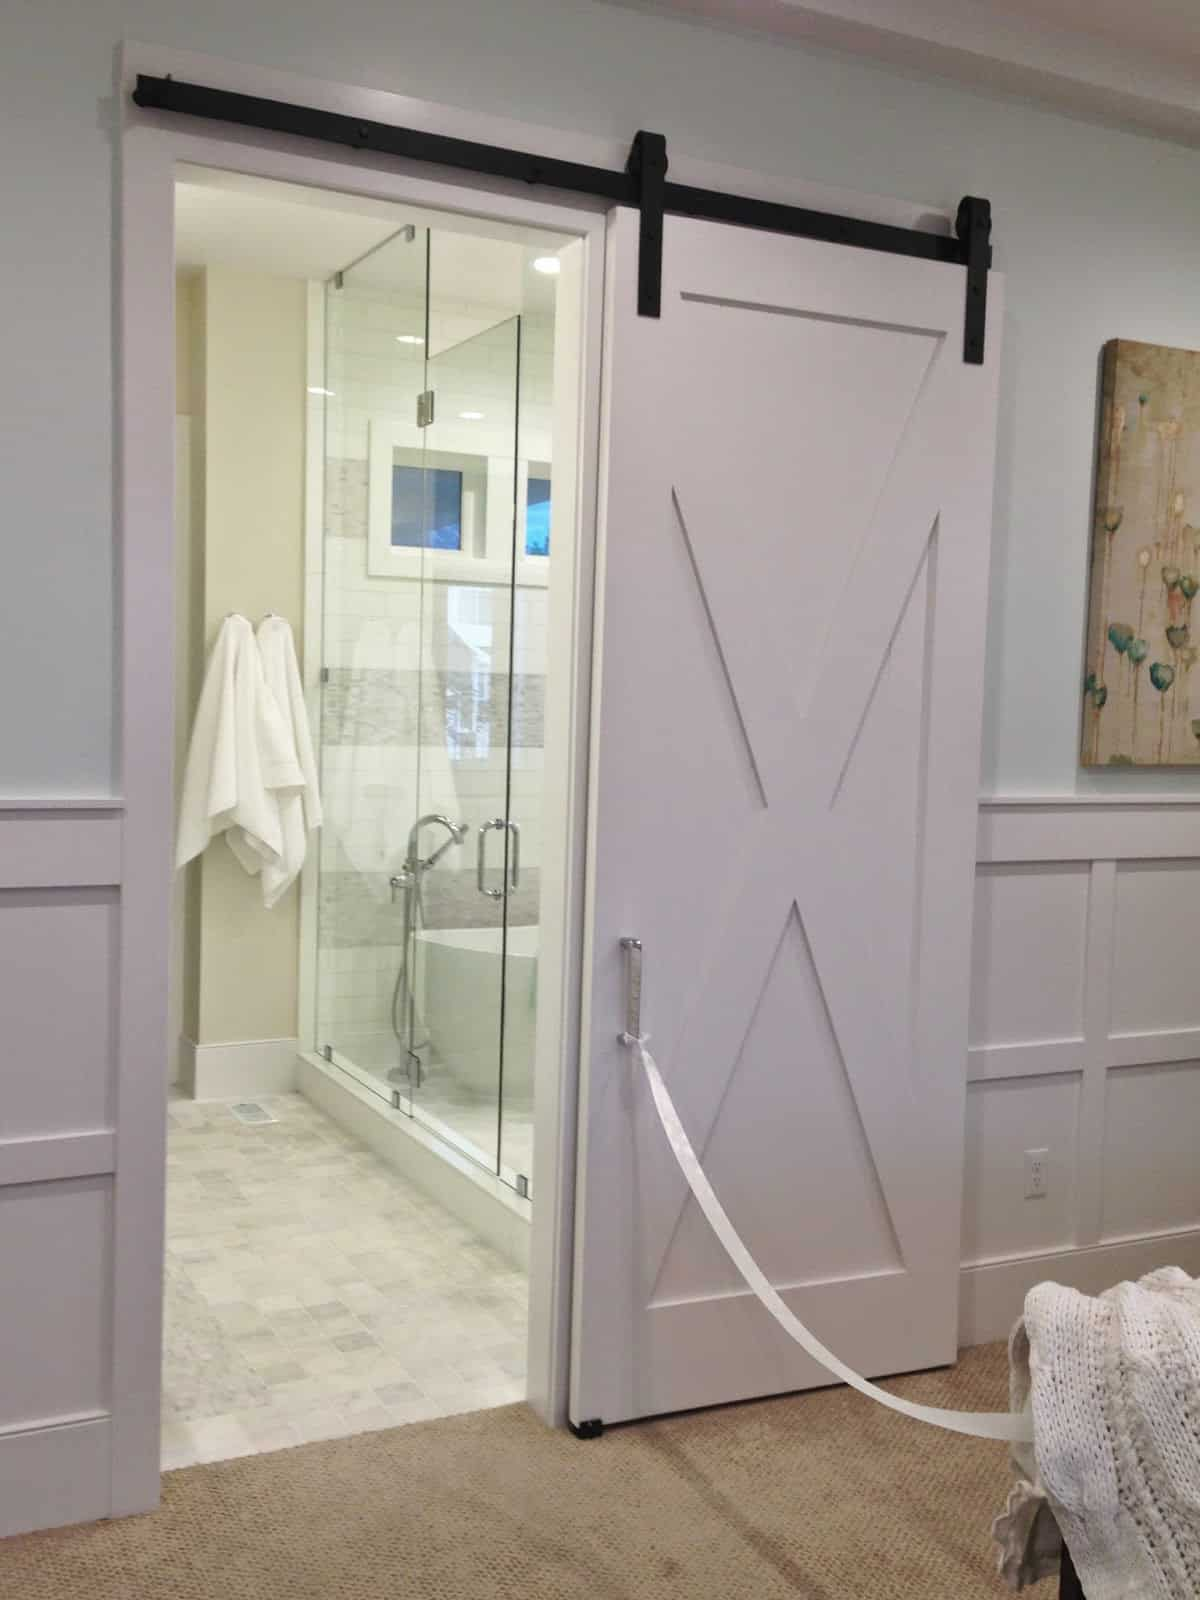 Simple, white barn doors can make all the difference when you're changing your bathroom doors for barn doors instead.